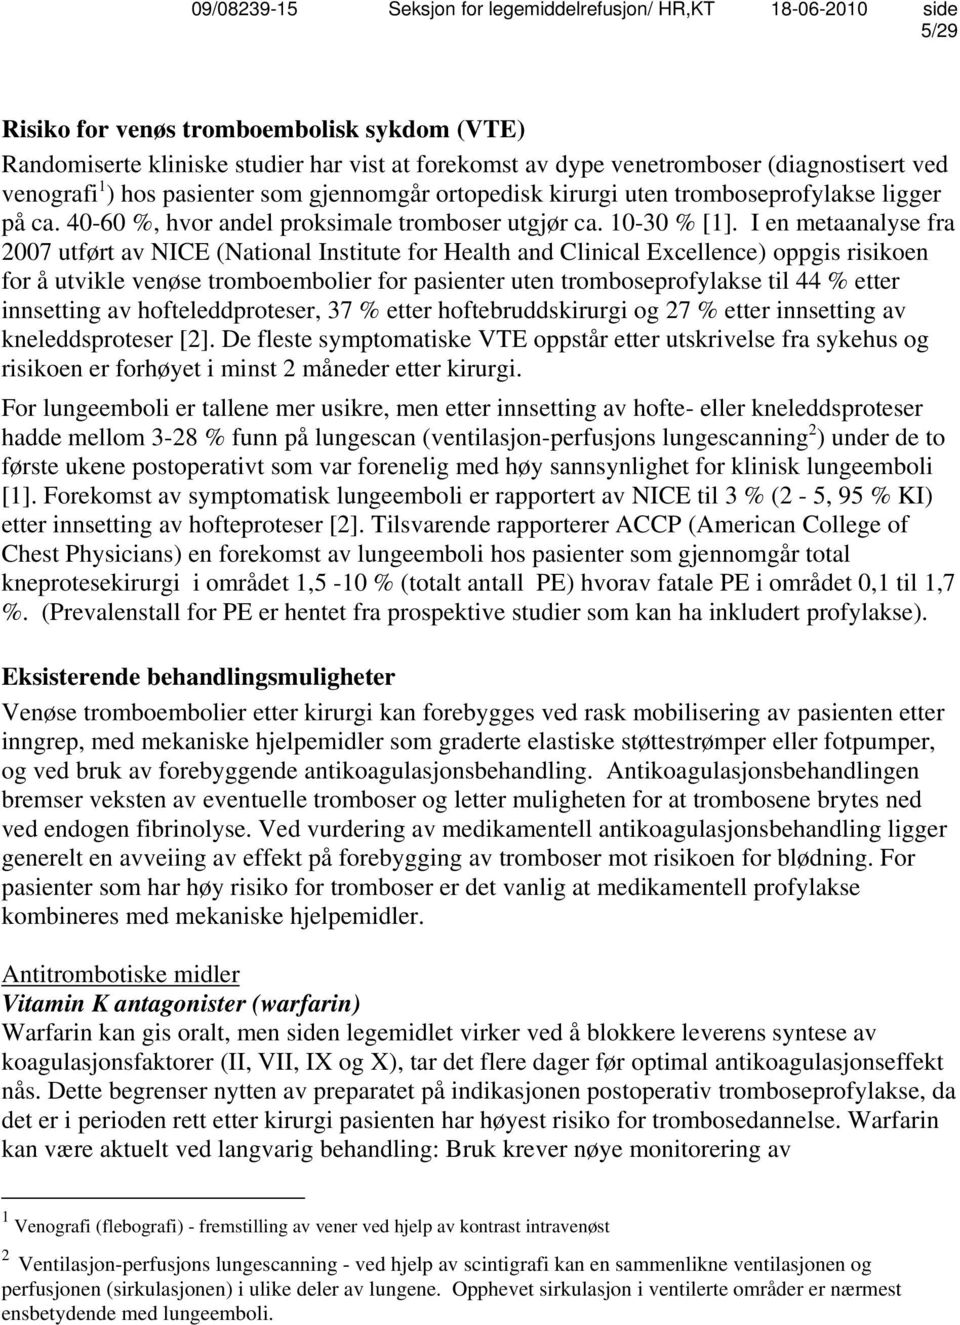 I en metaanalyse fra 2007 utført av NICE (National Institute for Health and Clinical Excellence) oppgis risikoen for å utvikle venøse tromboembolier for pasienter uten tromboseprofylakse til 44 %